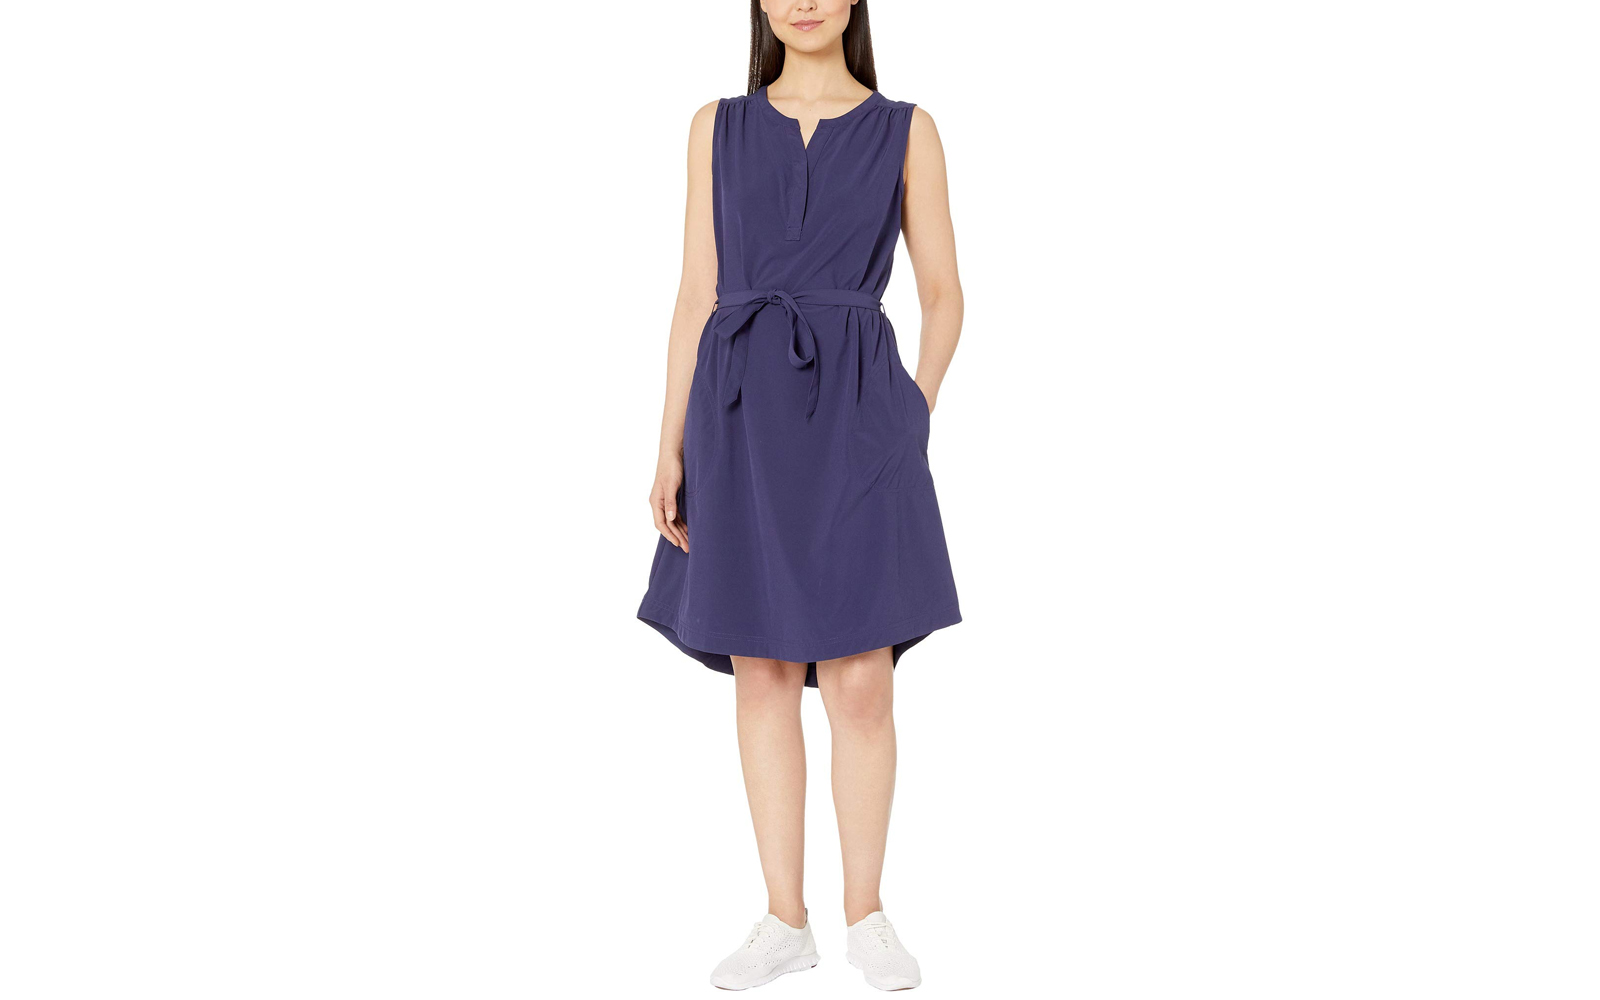 cc2a30fcb5 9 Wrinkle-resistant Dresses for Travel